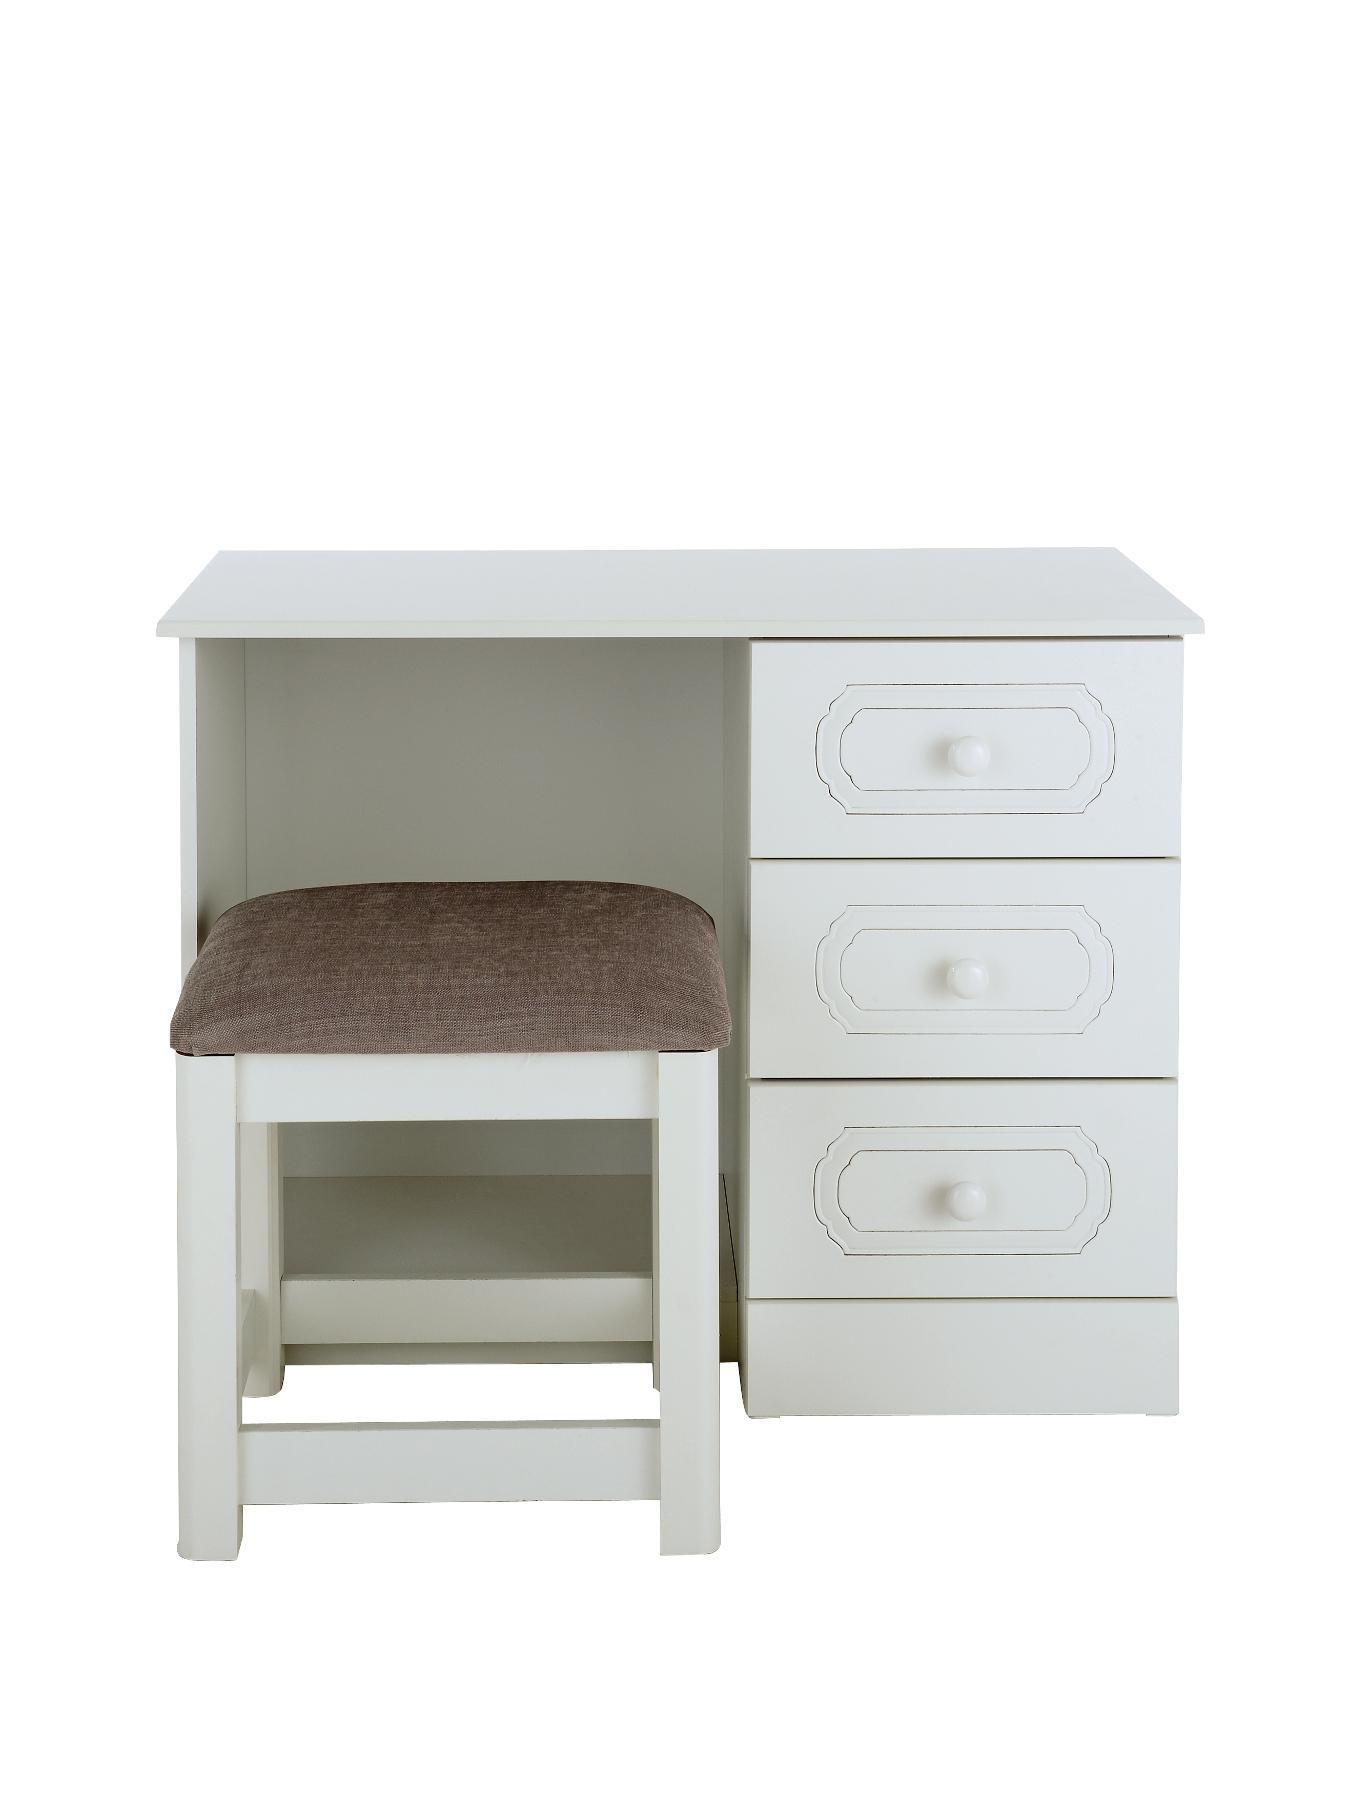 Hudson Ready Assembled Dressing Table and Stool, White